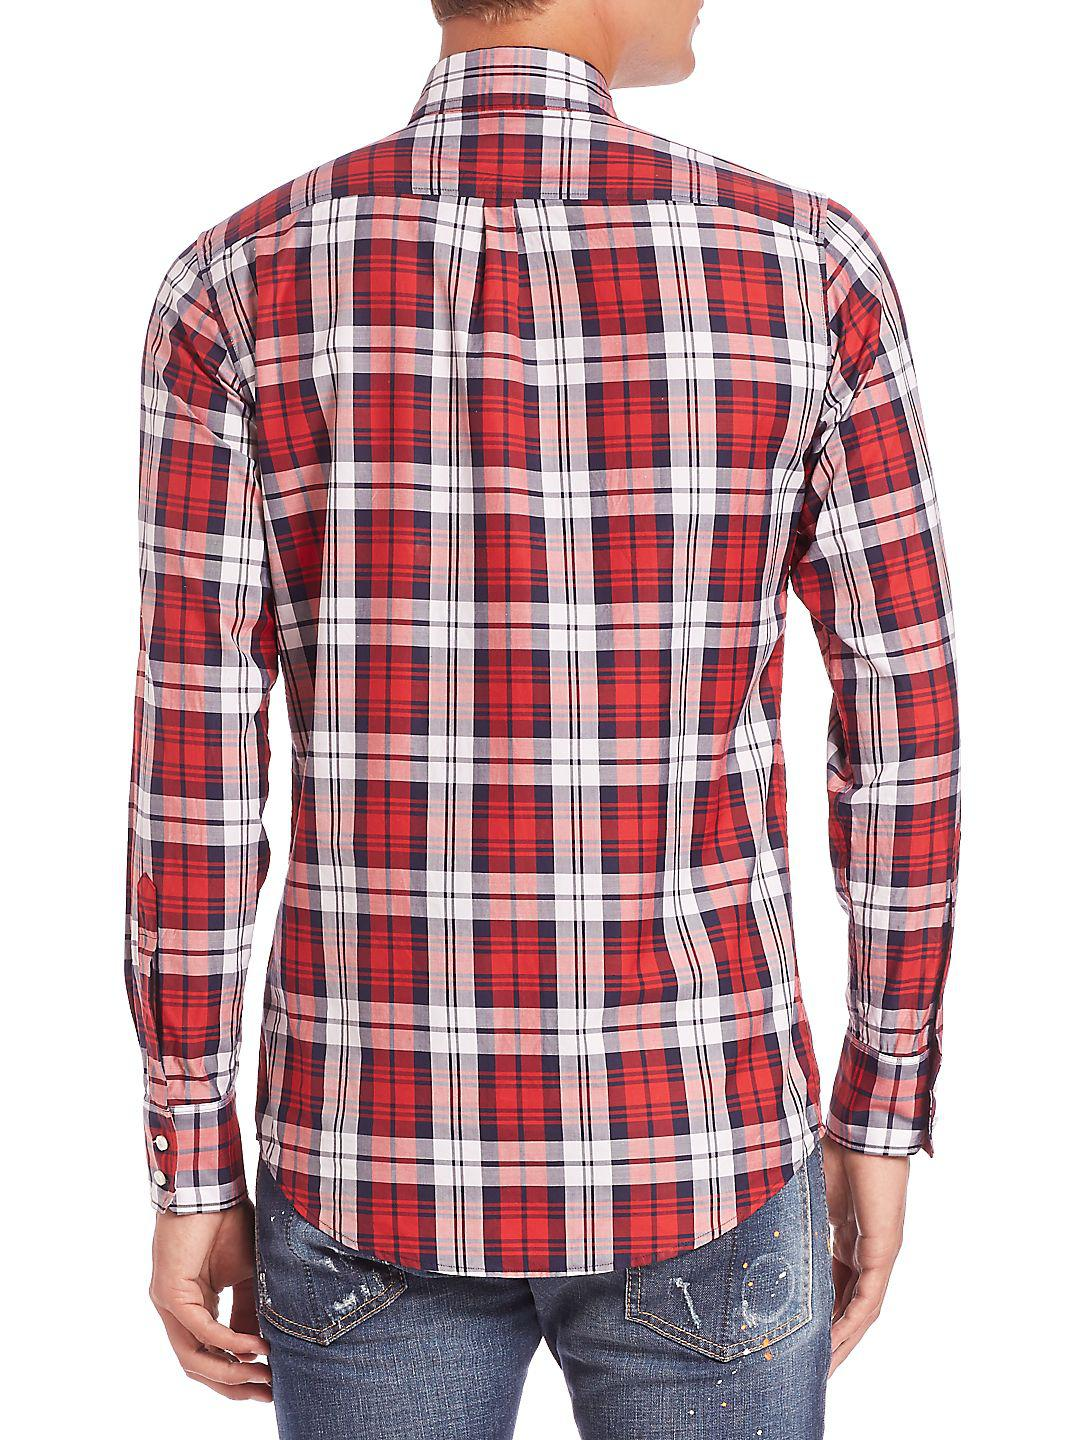 DSquared² Cotton Classic Check Sportshirt in Red (Grey) for Men